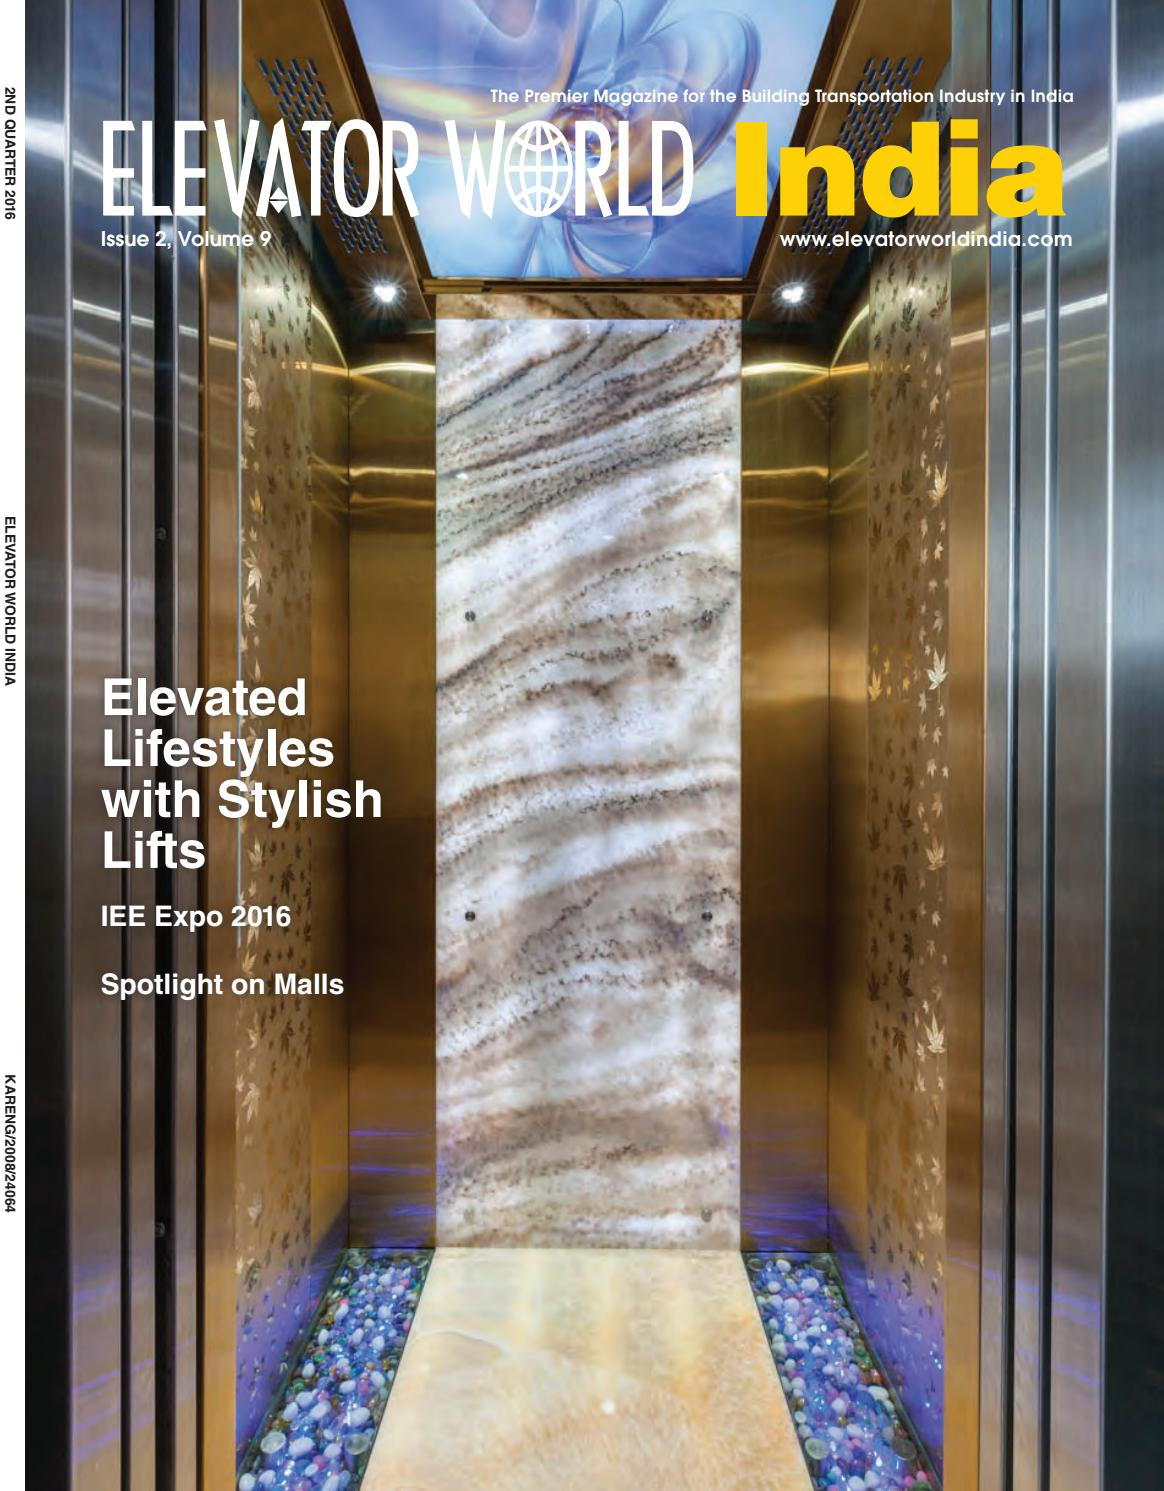 ELEVATOR WORLD India - 2nd Quarter 2016 by Elevator World